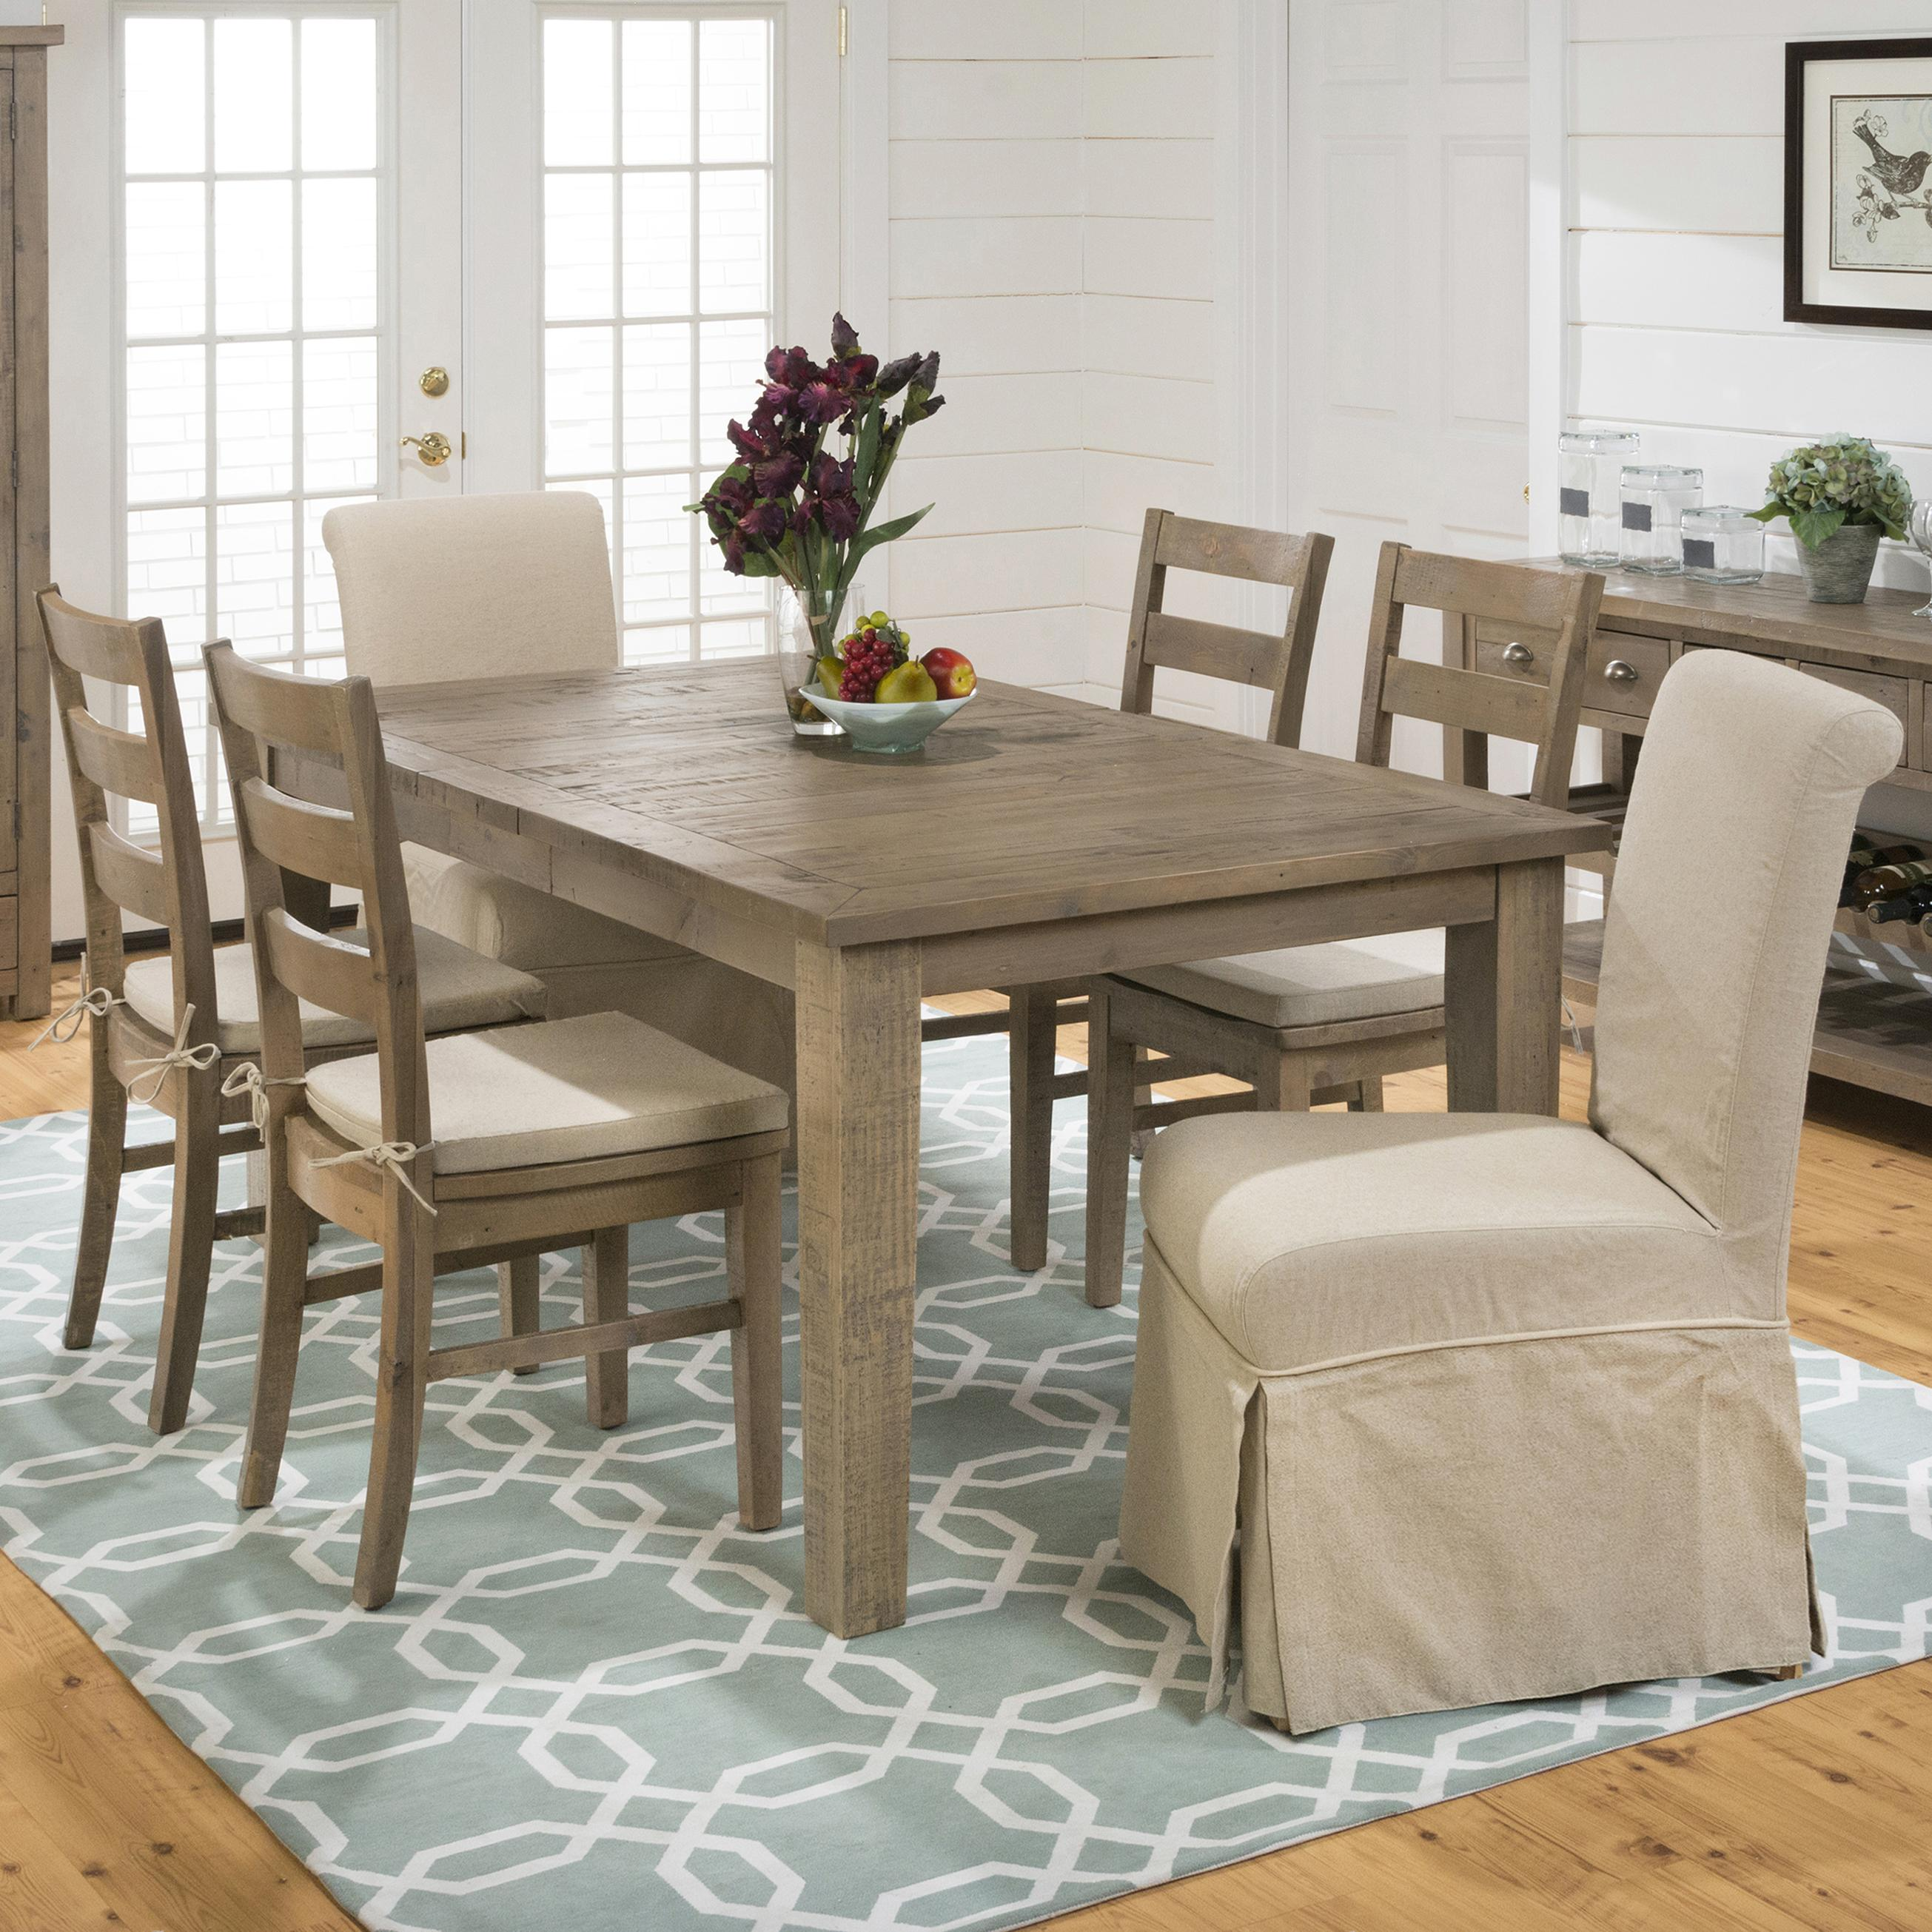 Jofran Slater Mill Pine Table and Chair Set - Item Number: 941-72+2x162KD+4x538KD+4xCUS-941